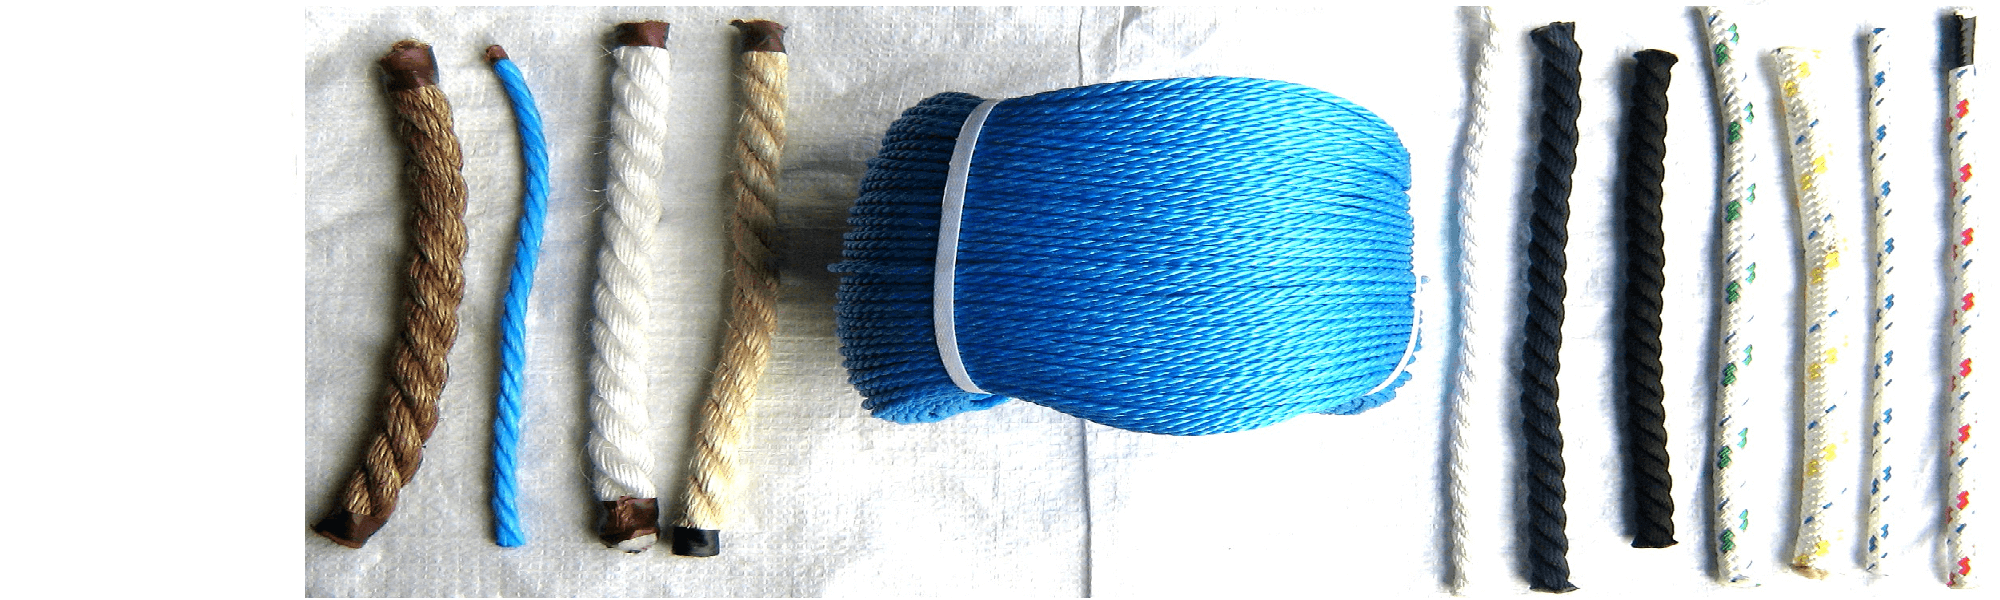 Polyester Rope | Buy Fibre Ropes | Rope Services Direct